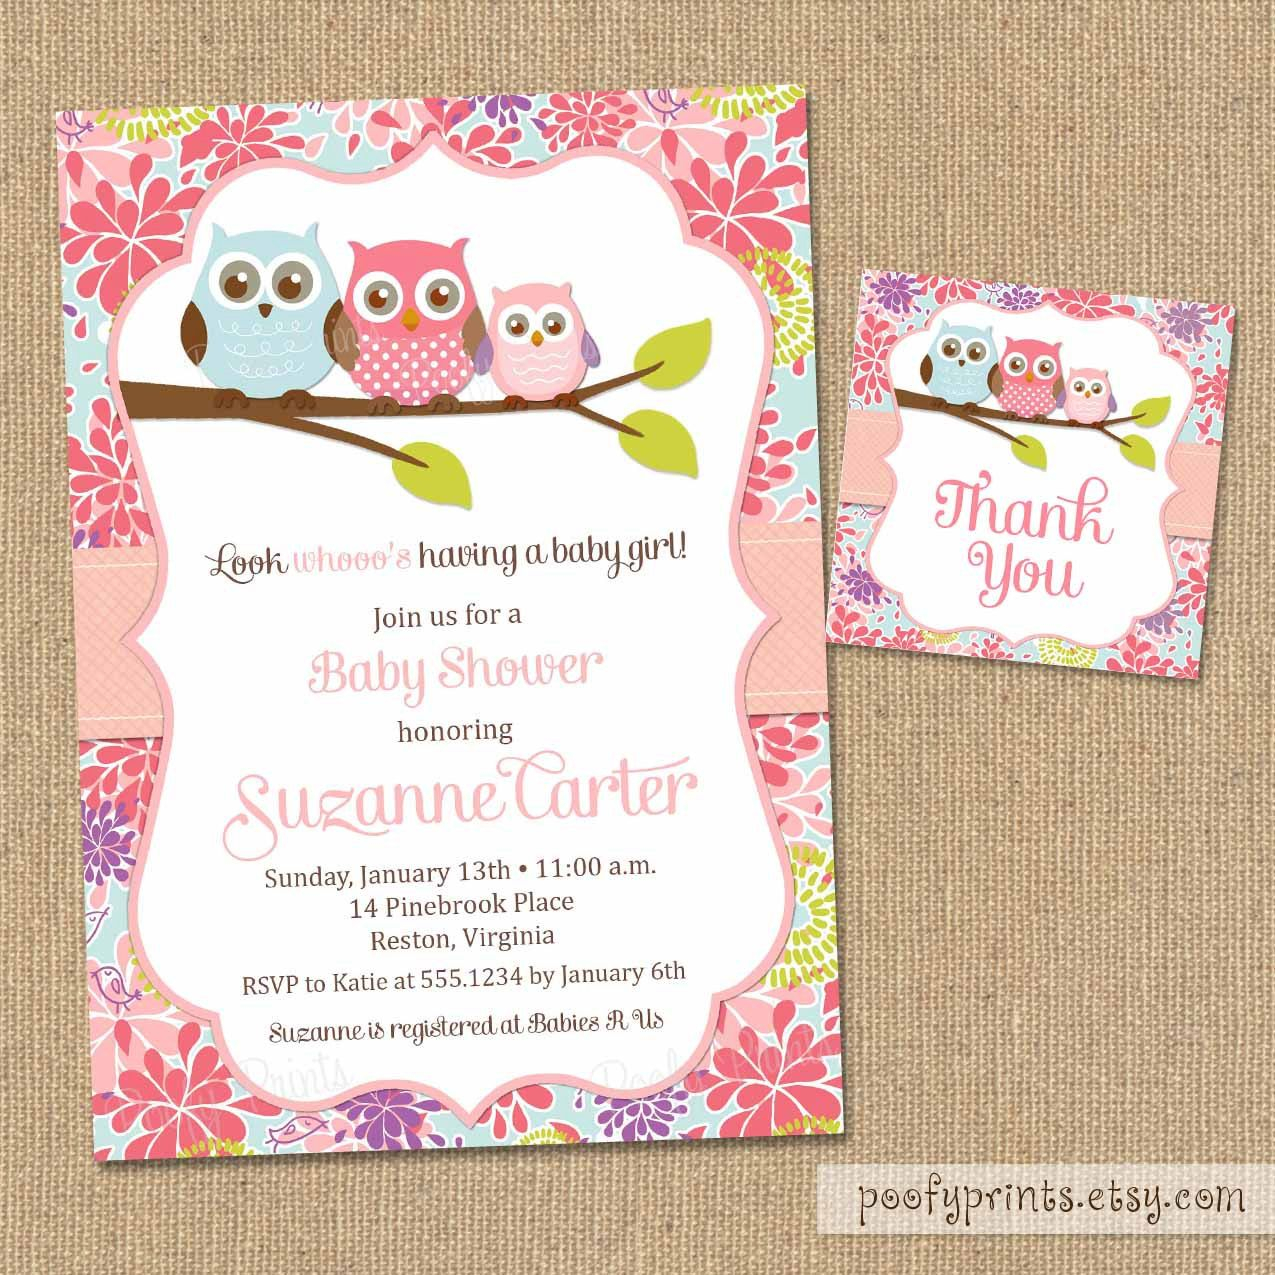 Lovely Free Printable Baby Shower Invitations | Invitations Printable Free with regard to Free Baby Shower Invitations